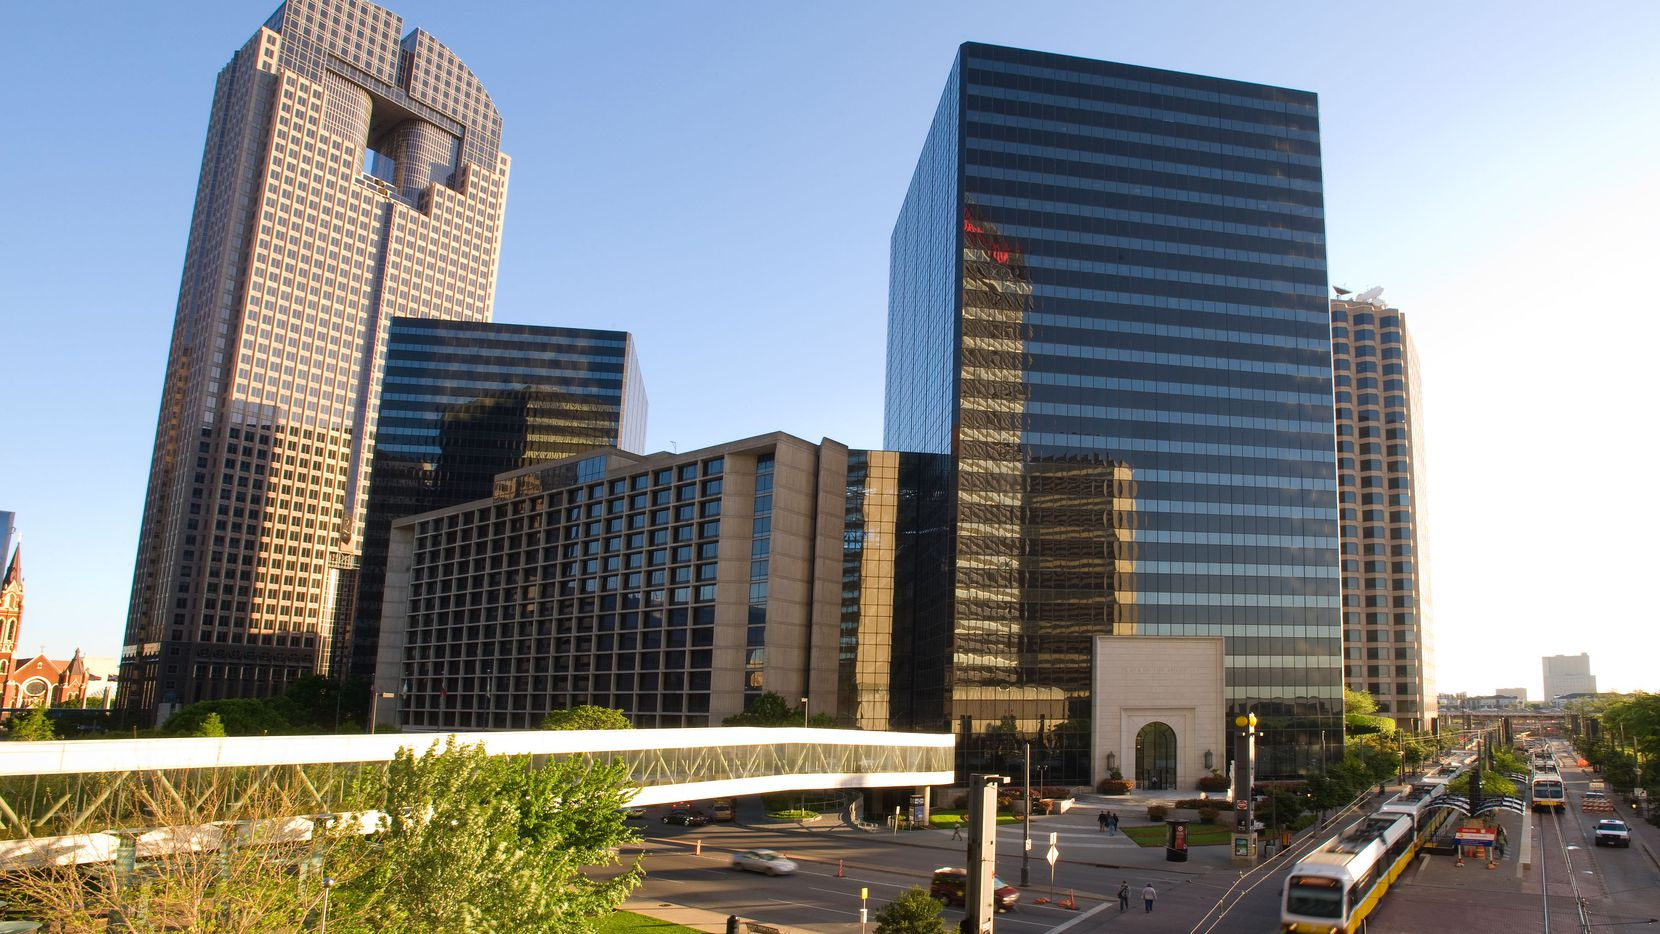 The FDIC is moving to the Plaza of the Americas on Pearl Street.